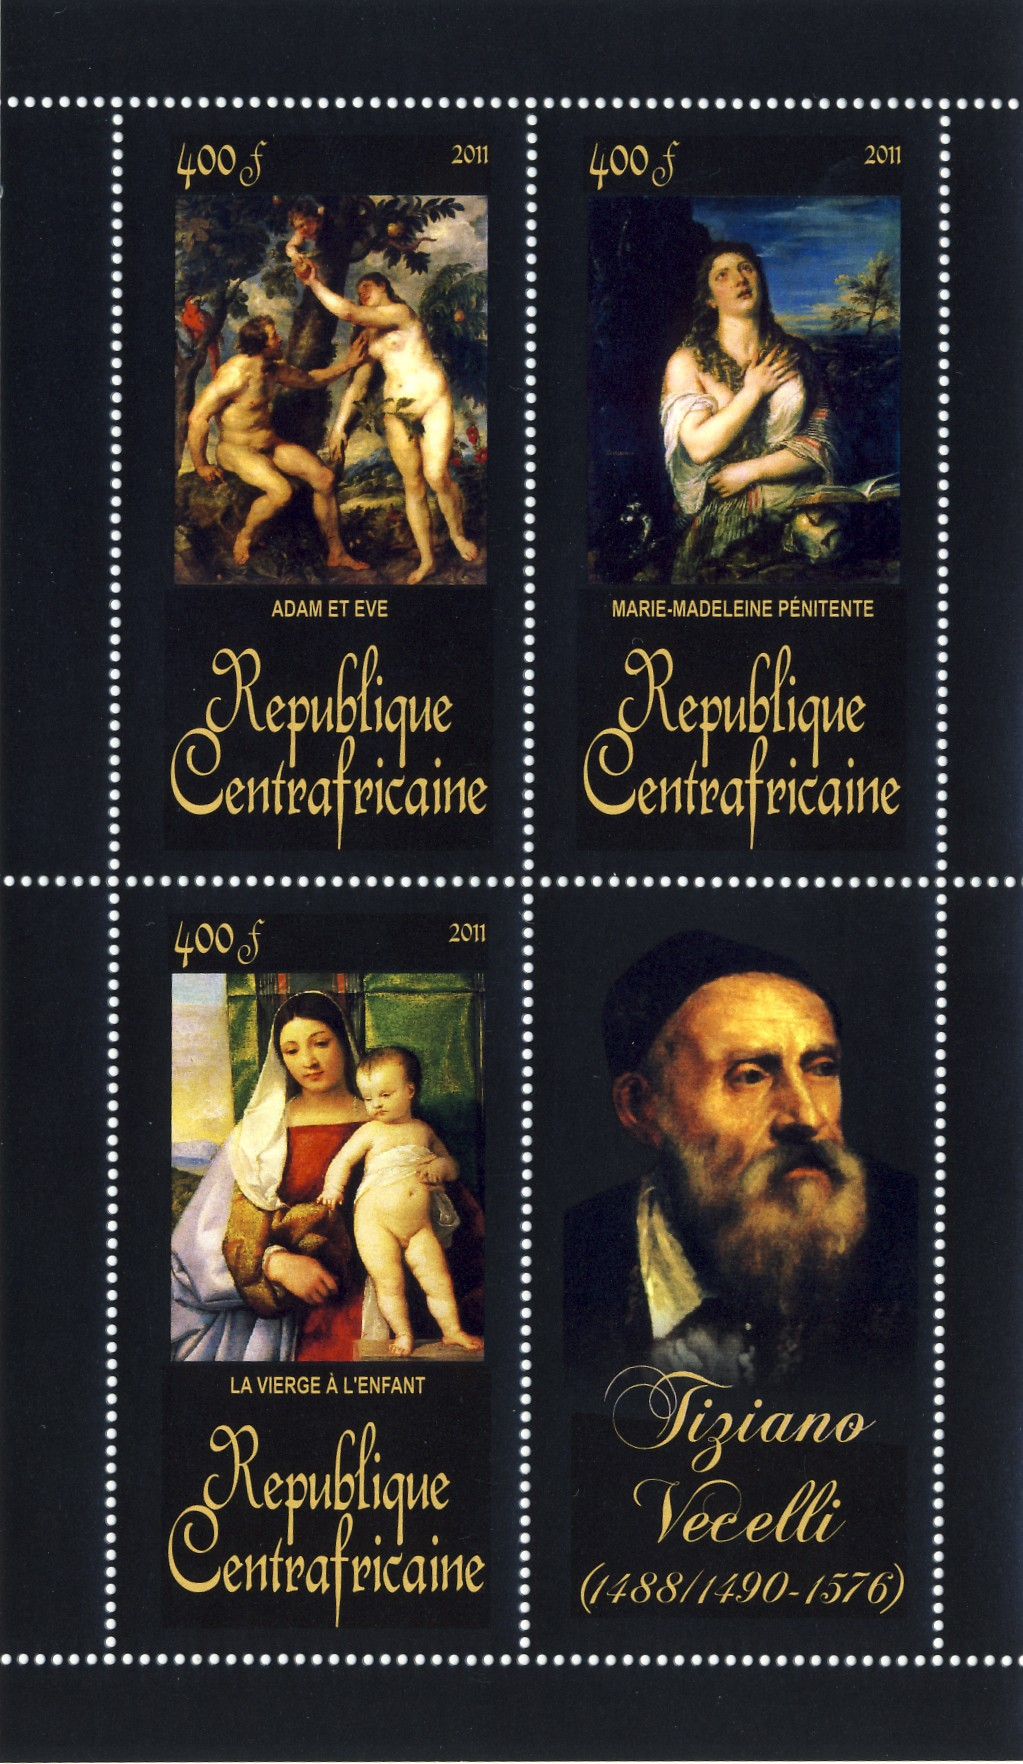 Paintings of Tiziano Vecelli, (1488/1490-1576). (Adam et Eve, La vierge a l'enfant). - Issue of Central African republic postage stamps